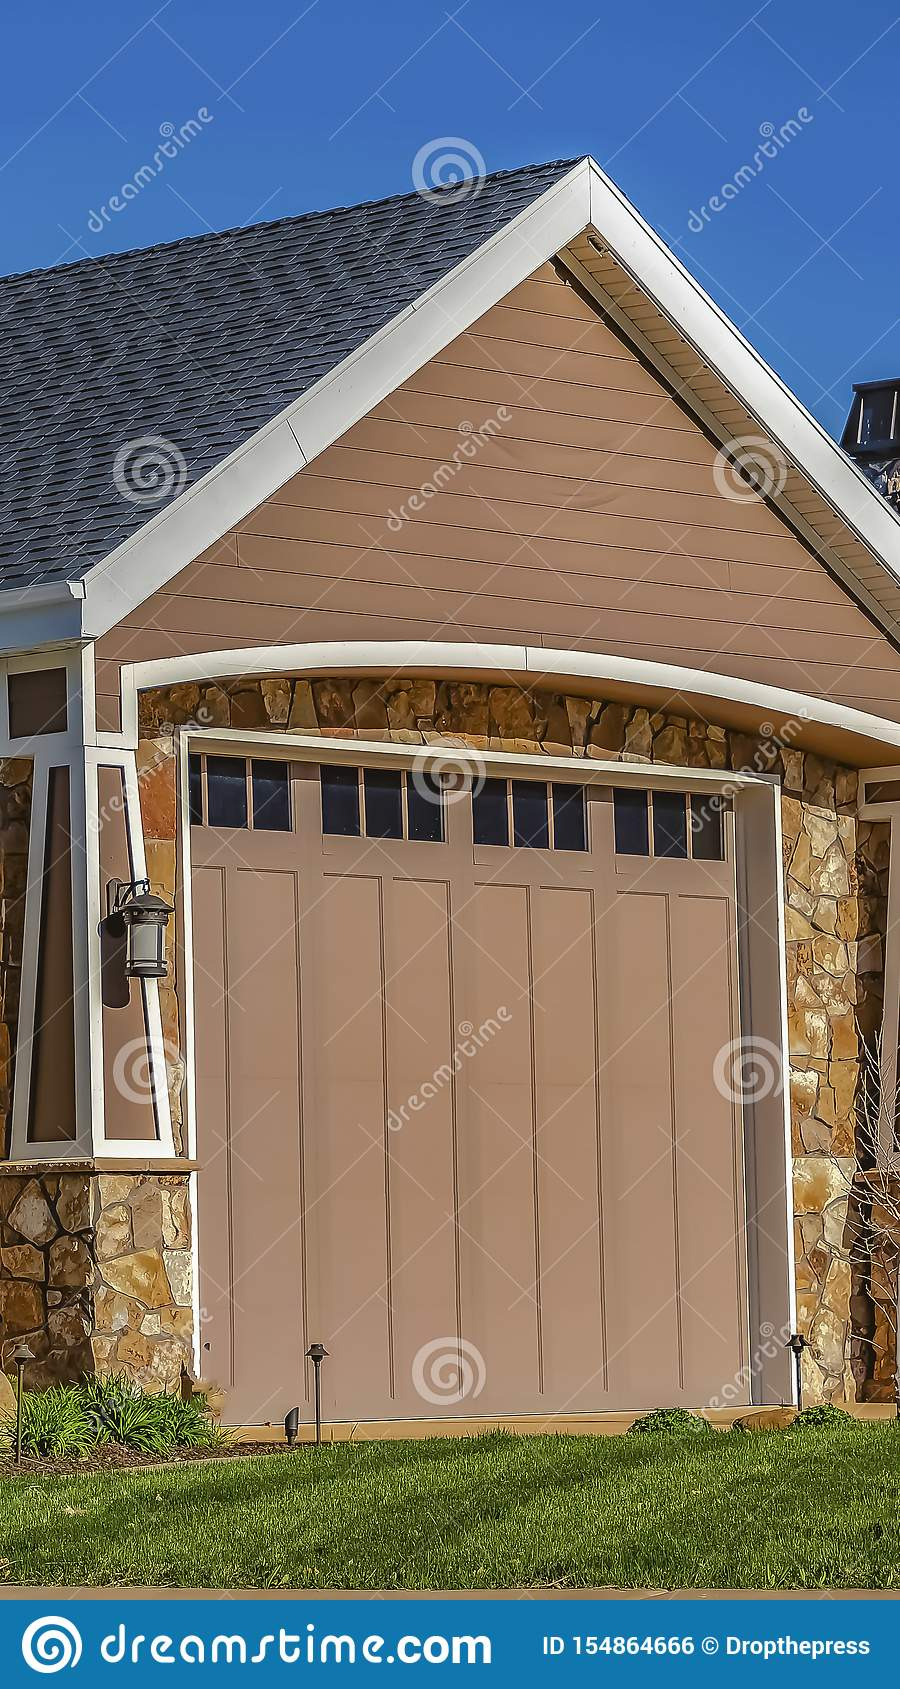 Front Gate with Roof Unique Vertical Frame Home with Garage Door Front Lawn and Metal